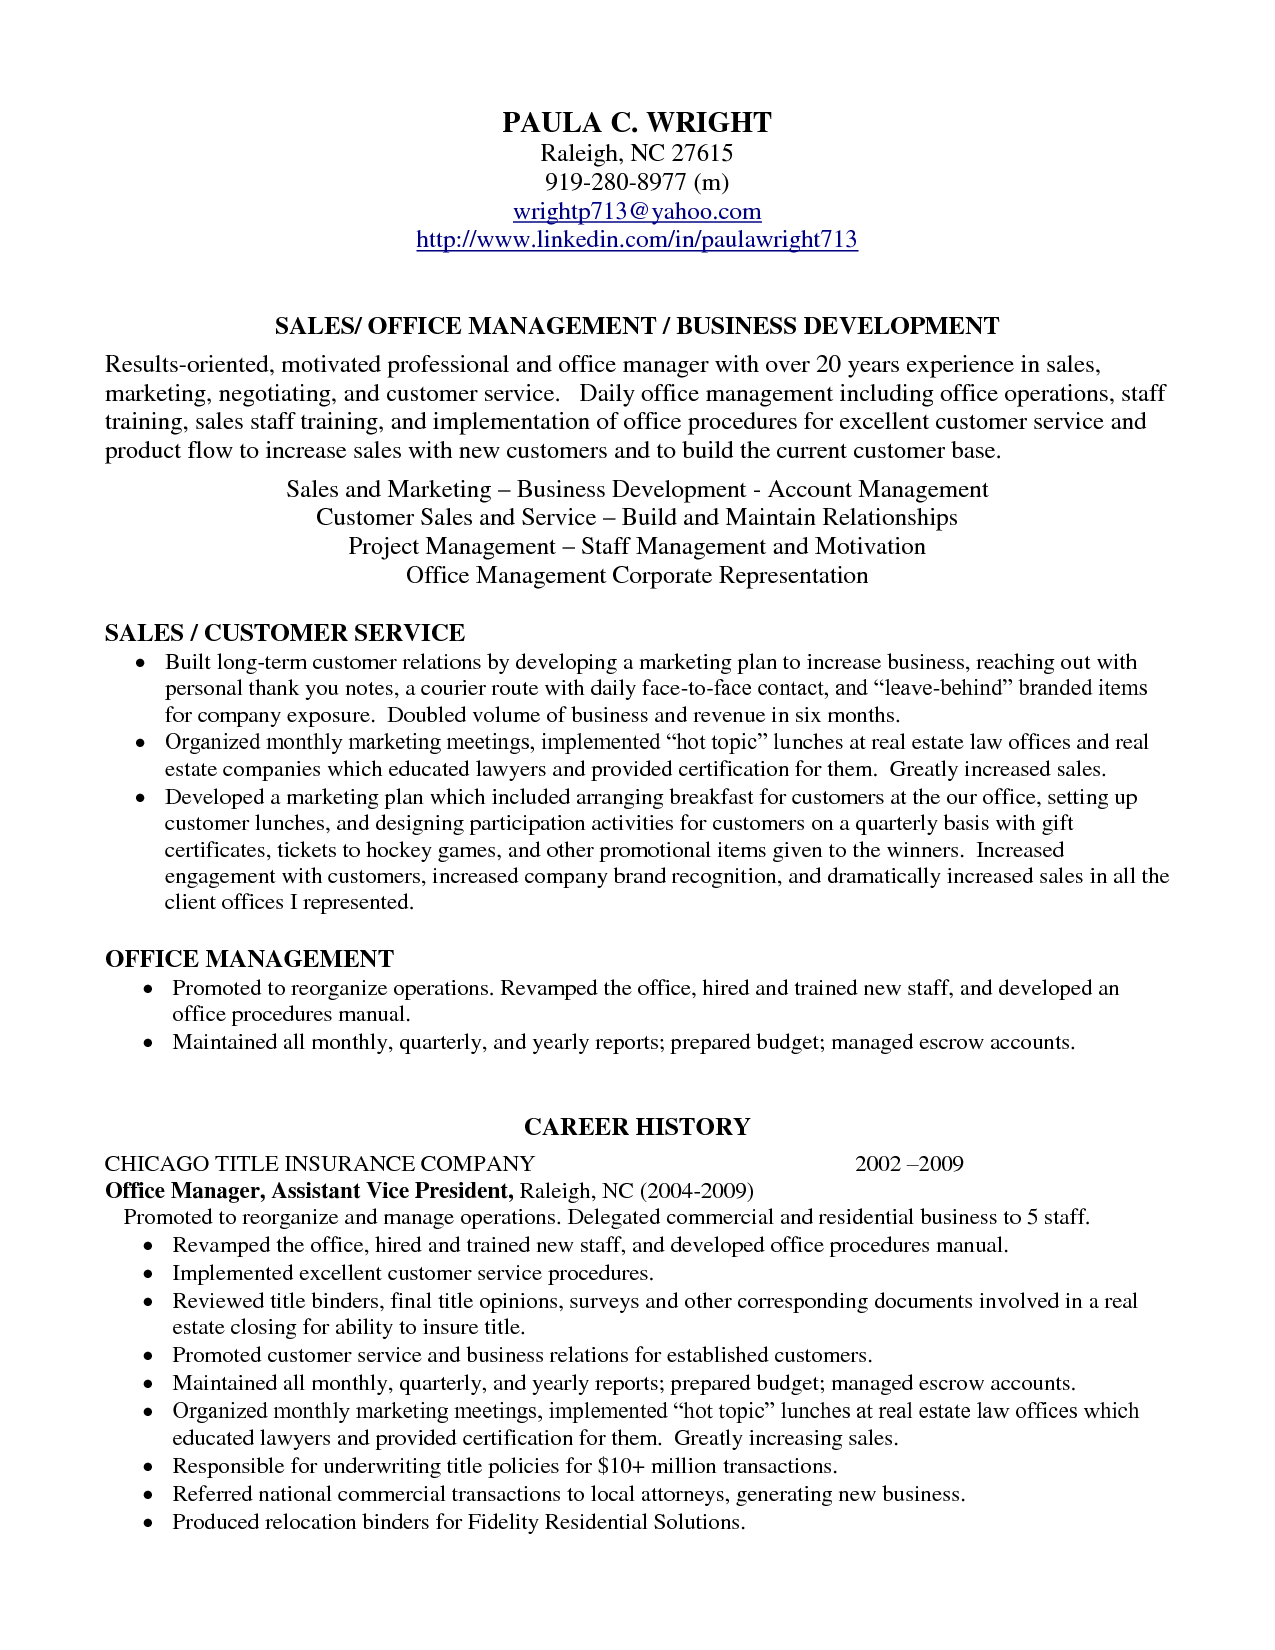 profile in resumes